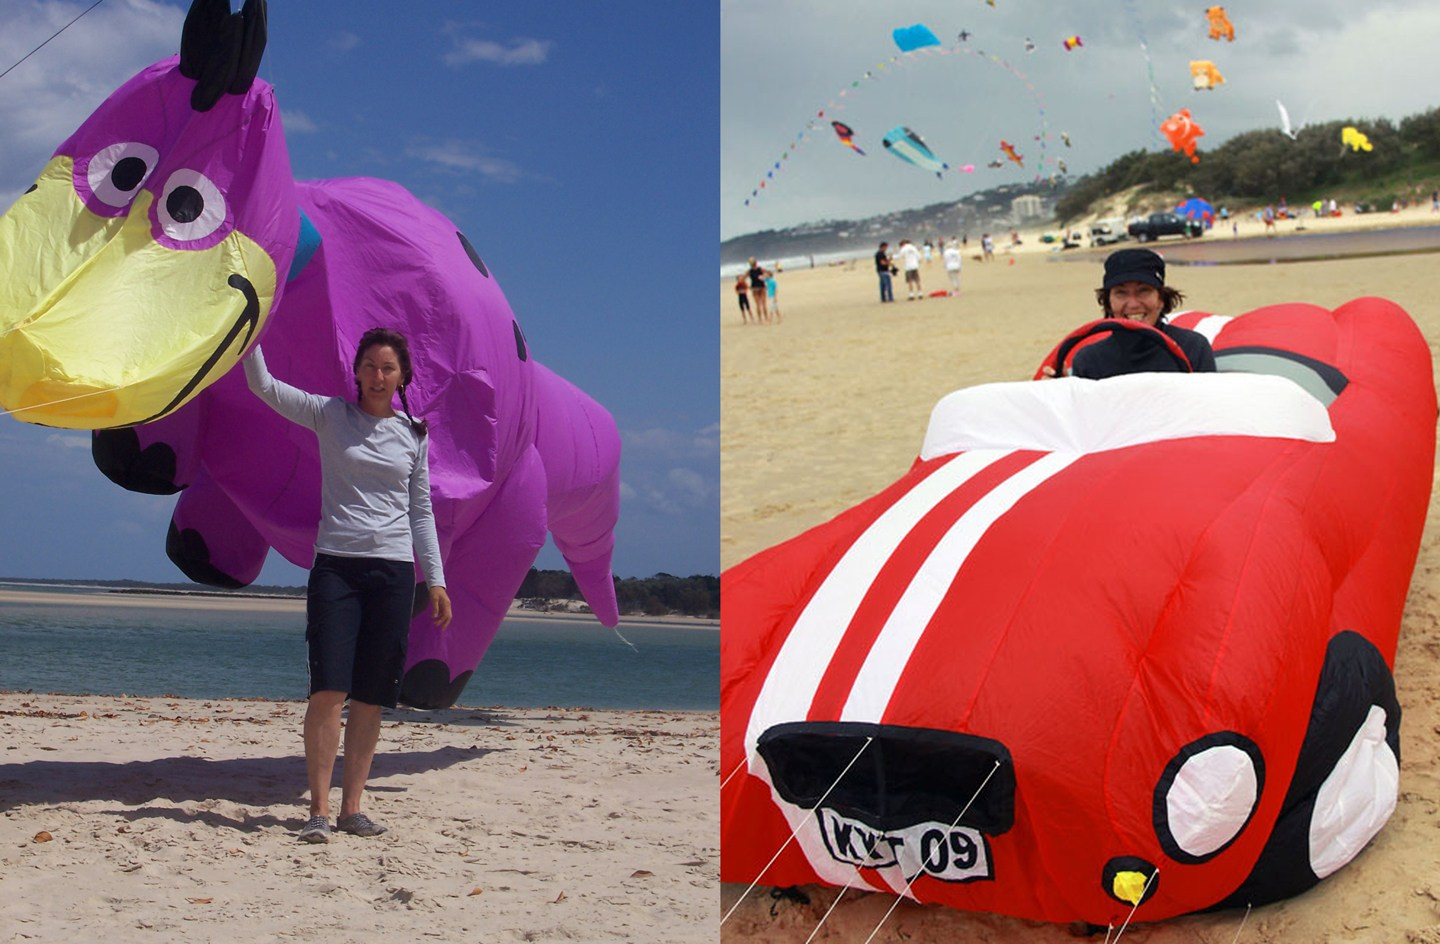 Two of Jan's 3D inflatable kite creations; a large purple dinosoar and life-size red sports car